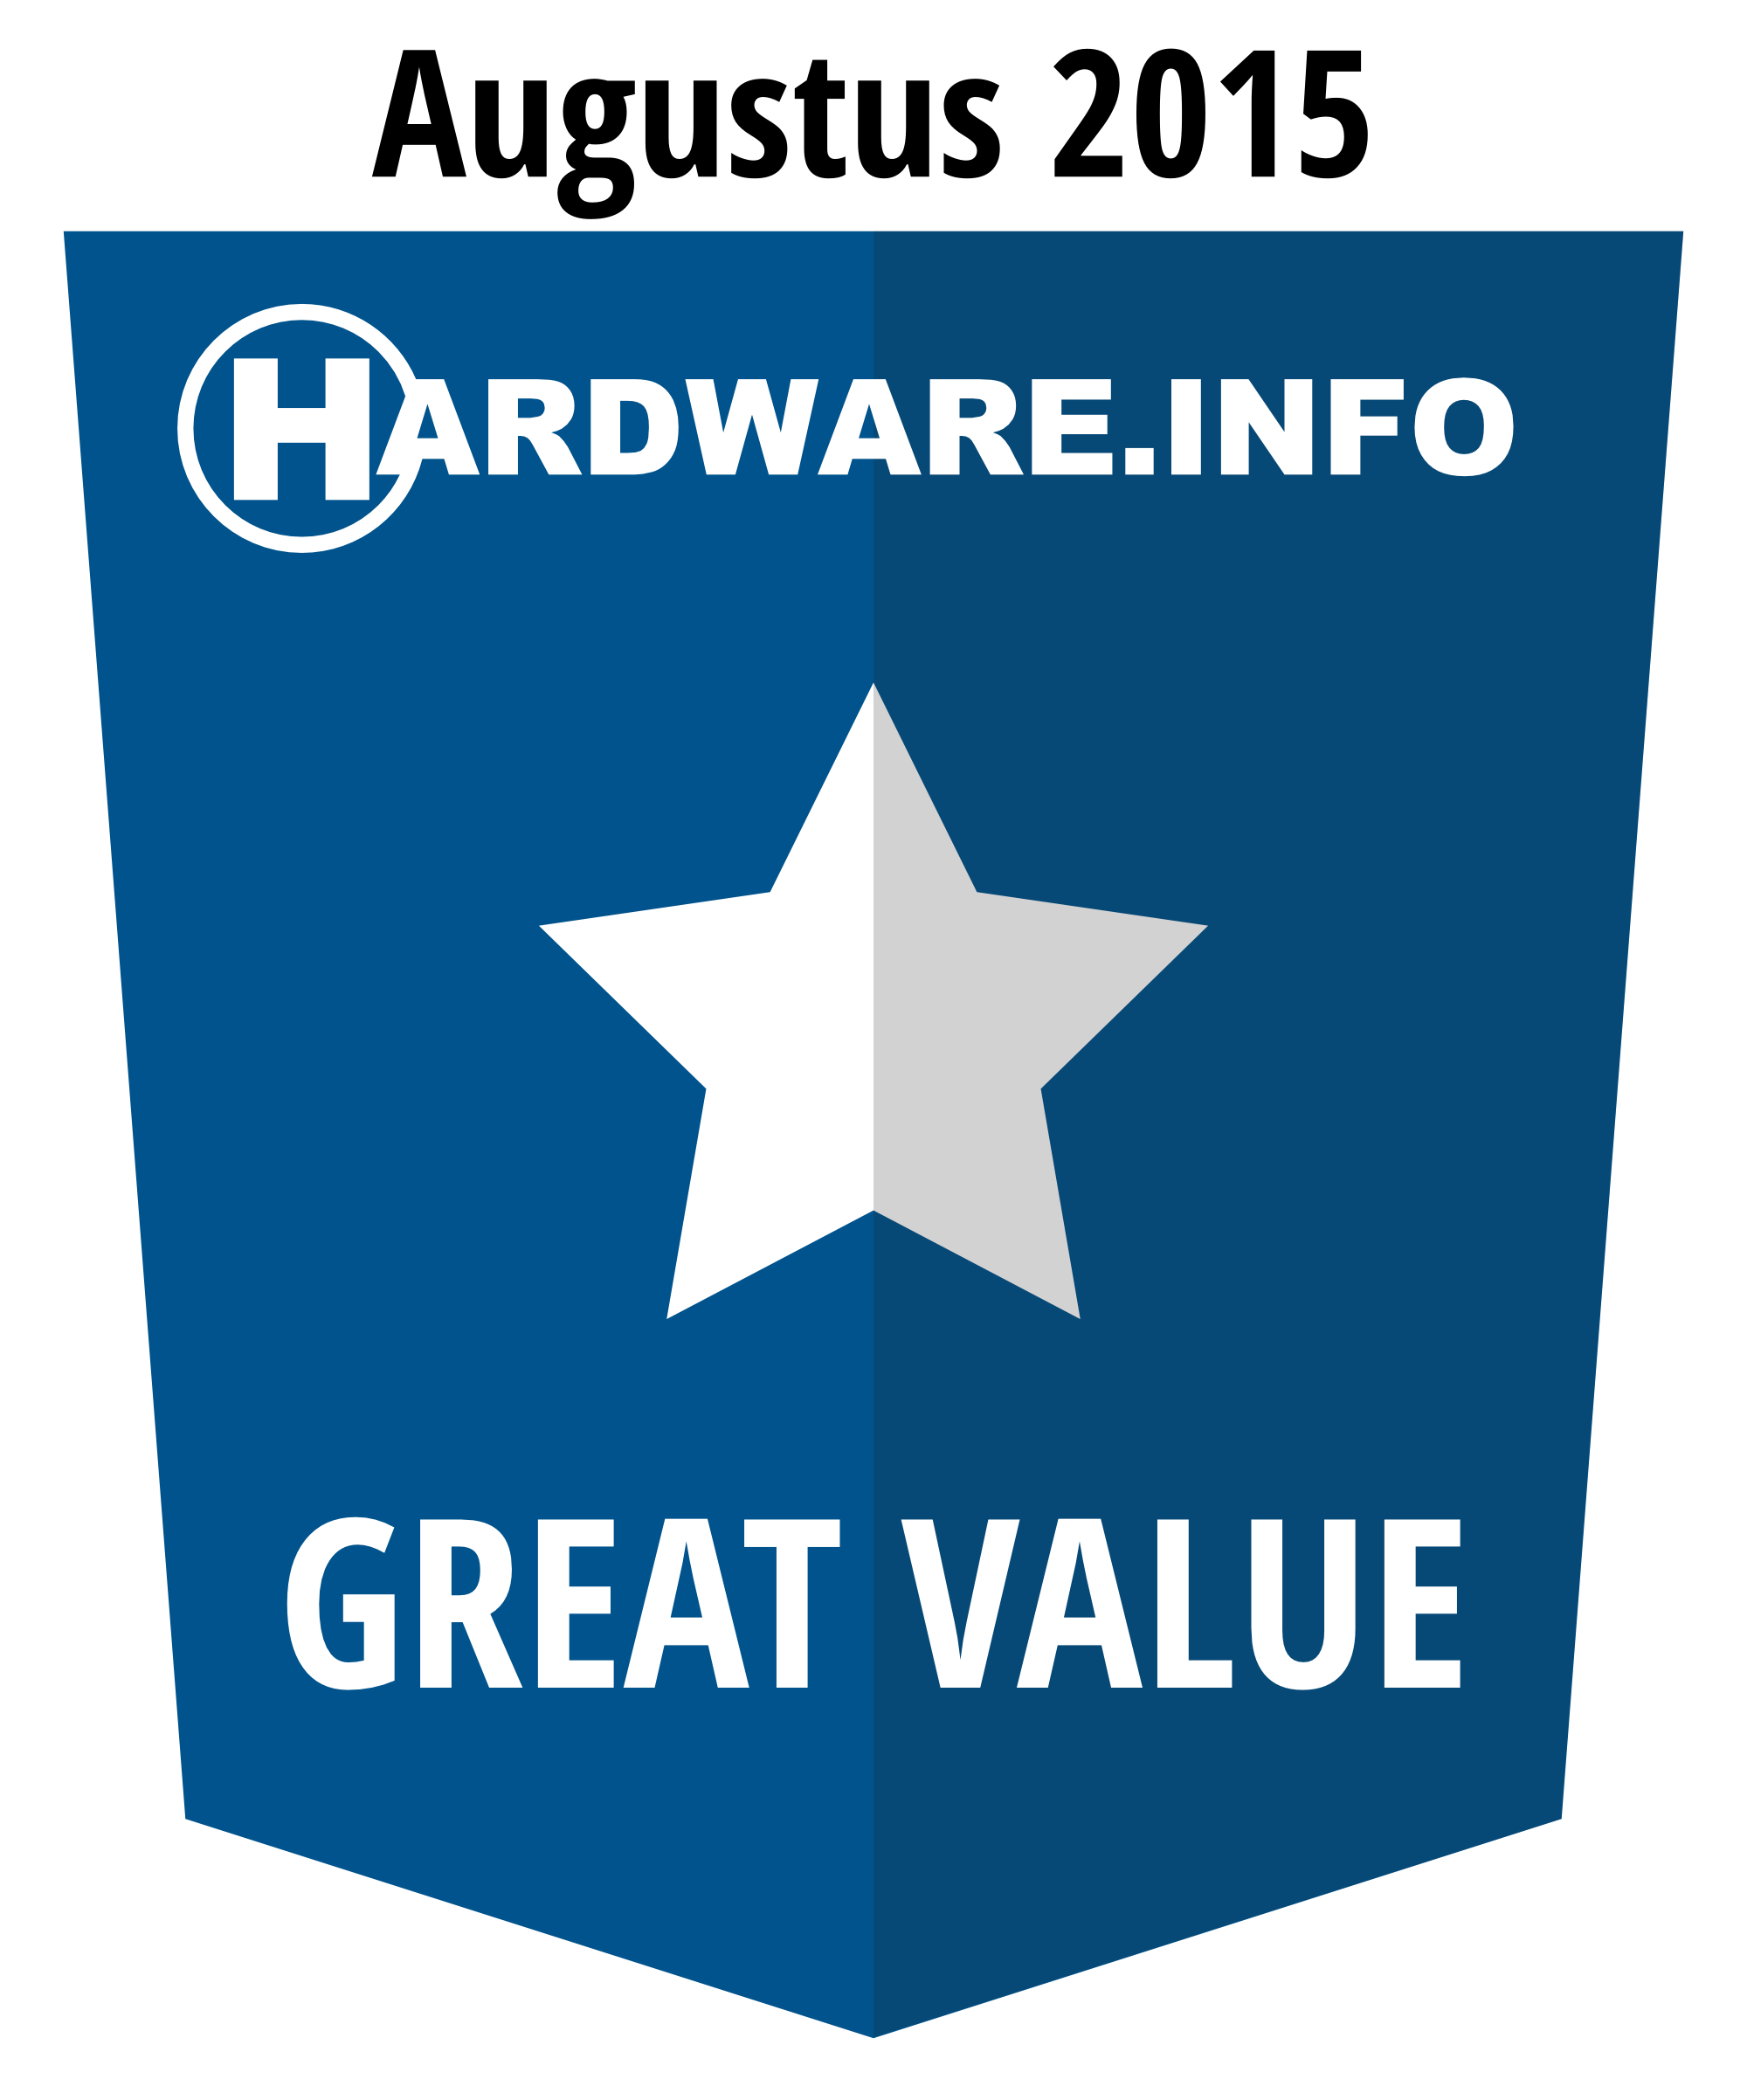 Great Value award